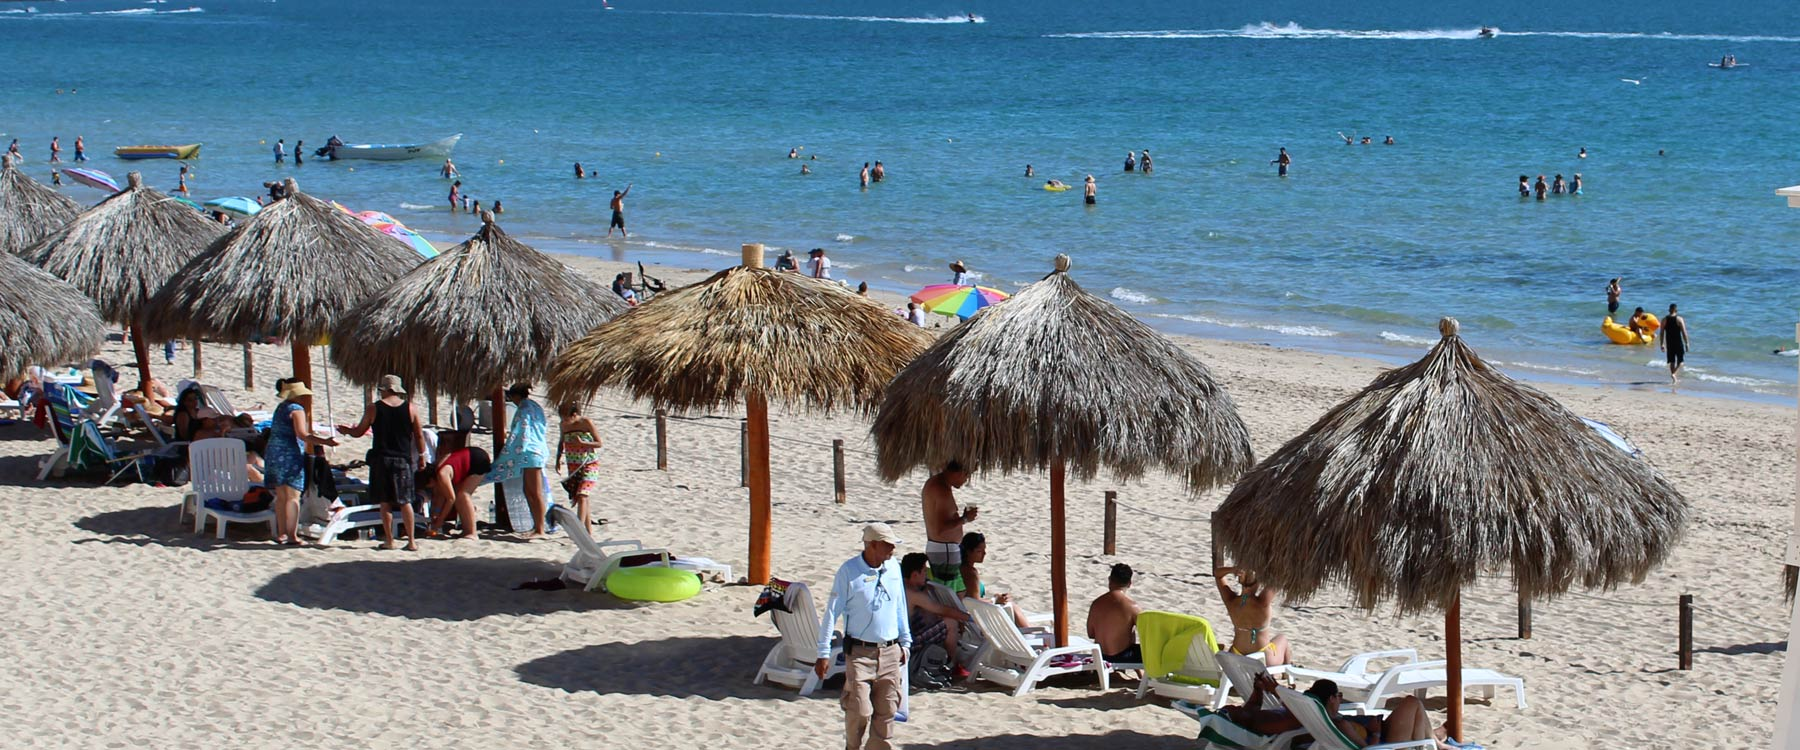 Lots of fun, security, and room to play in Puerto Penasco (Rocky Point Mexico).